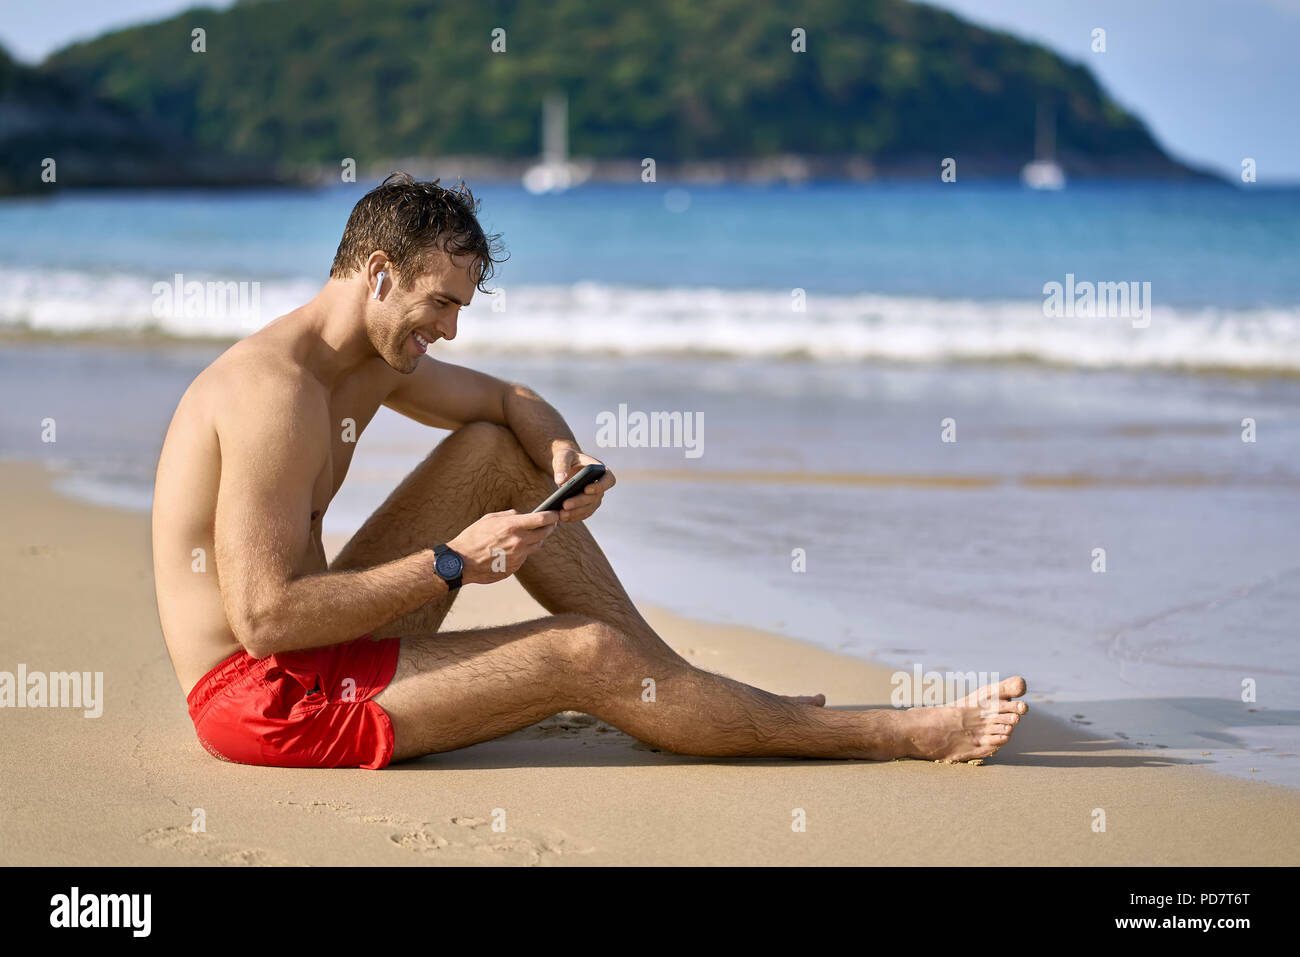 Attractive tanned man sits on the sand beach on the sunny background of the sea with white boats and the green hills. He wears a red swim trunks, whit - Stock Image